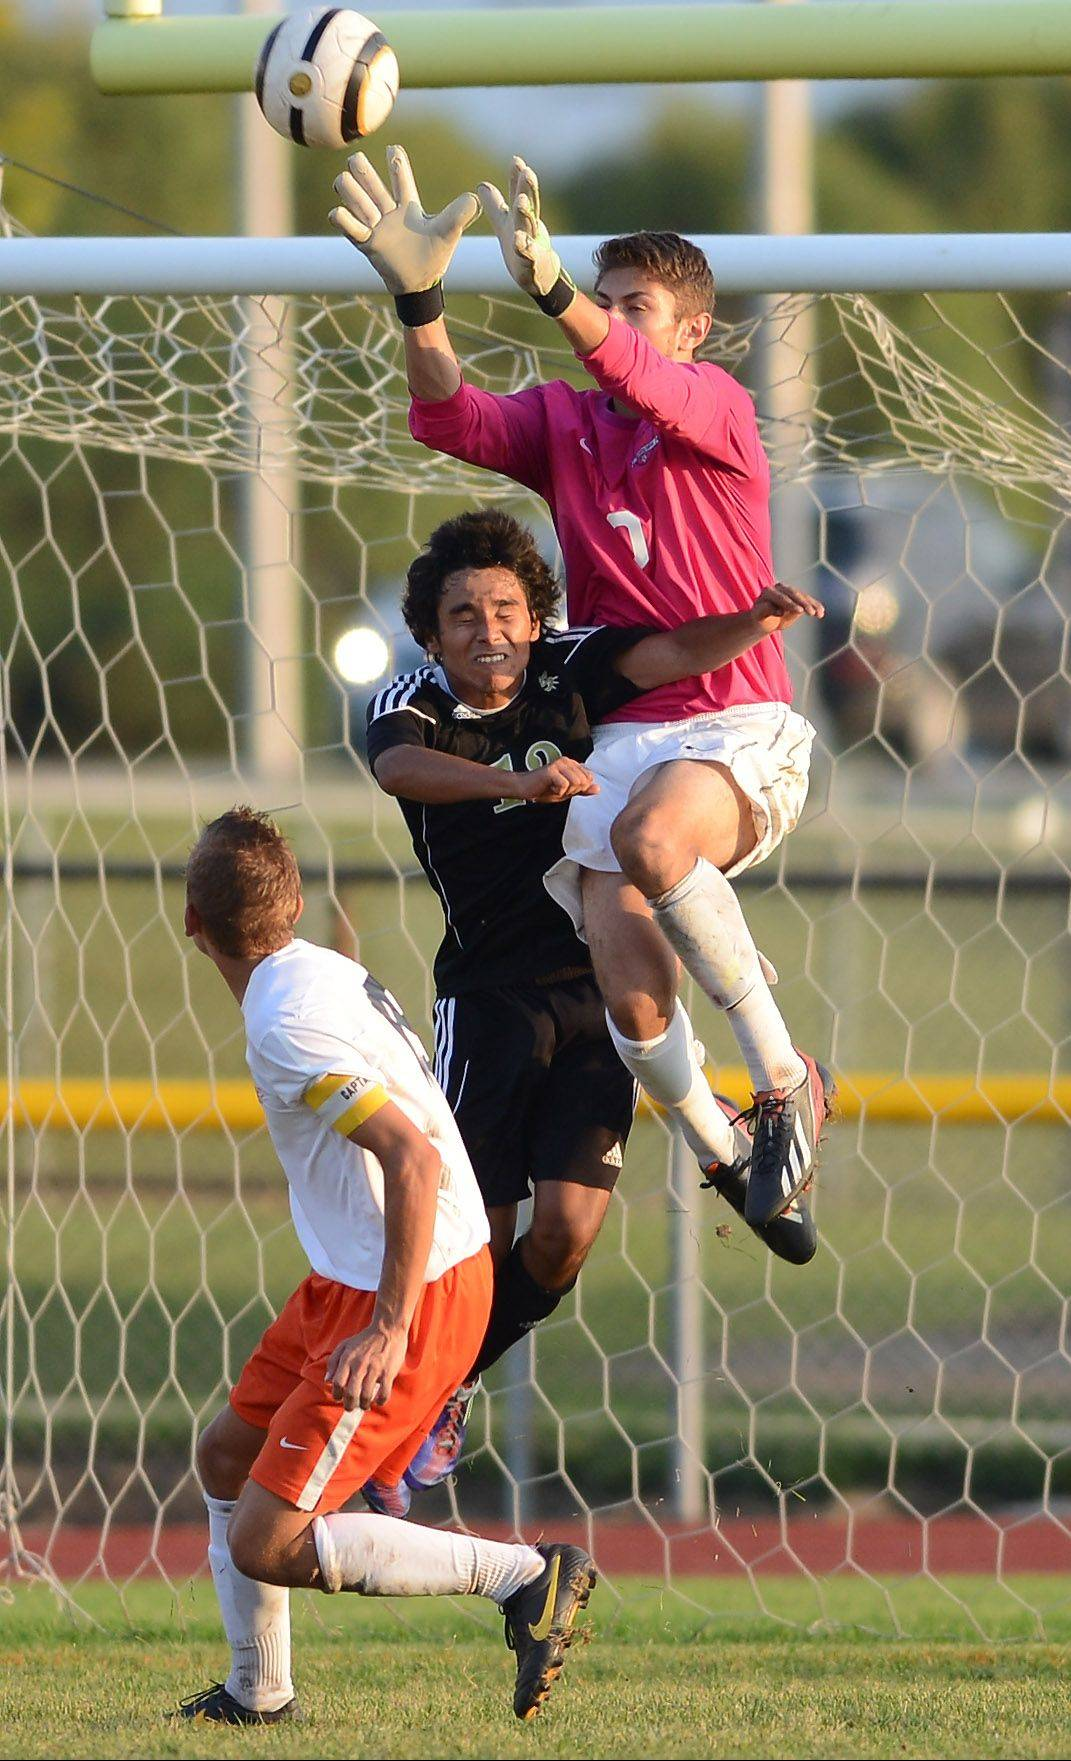 St. Charles East goalkeeper Chri Lucatorto snares ball while being challenged by Streamwood's Brain Benitez during Thursday's game in St. Charles.